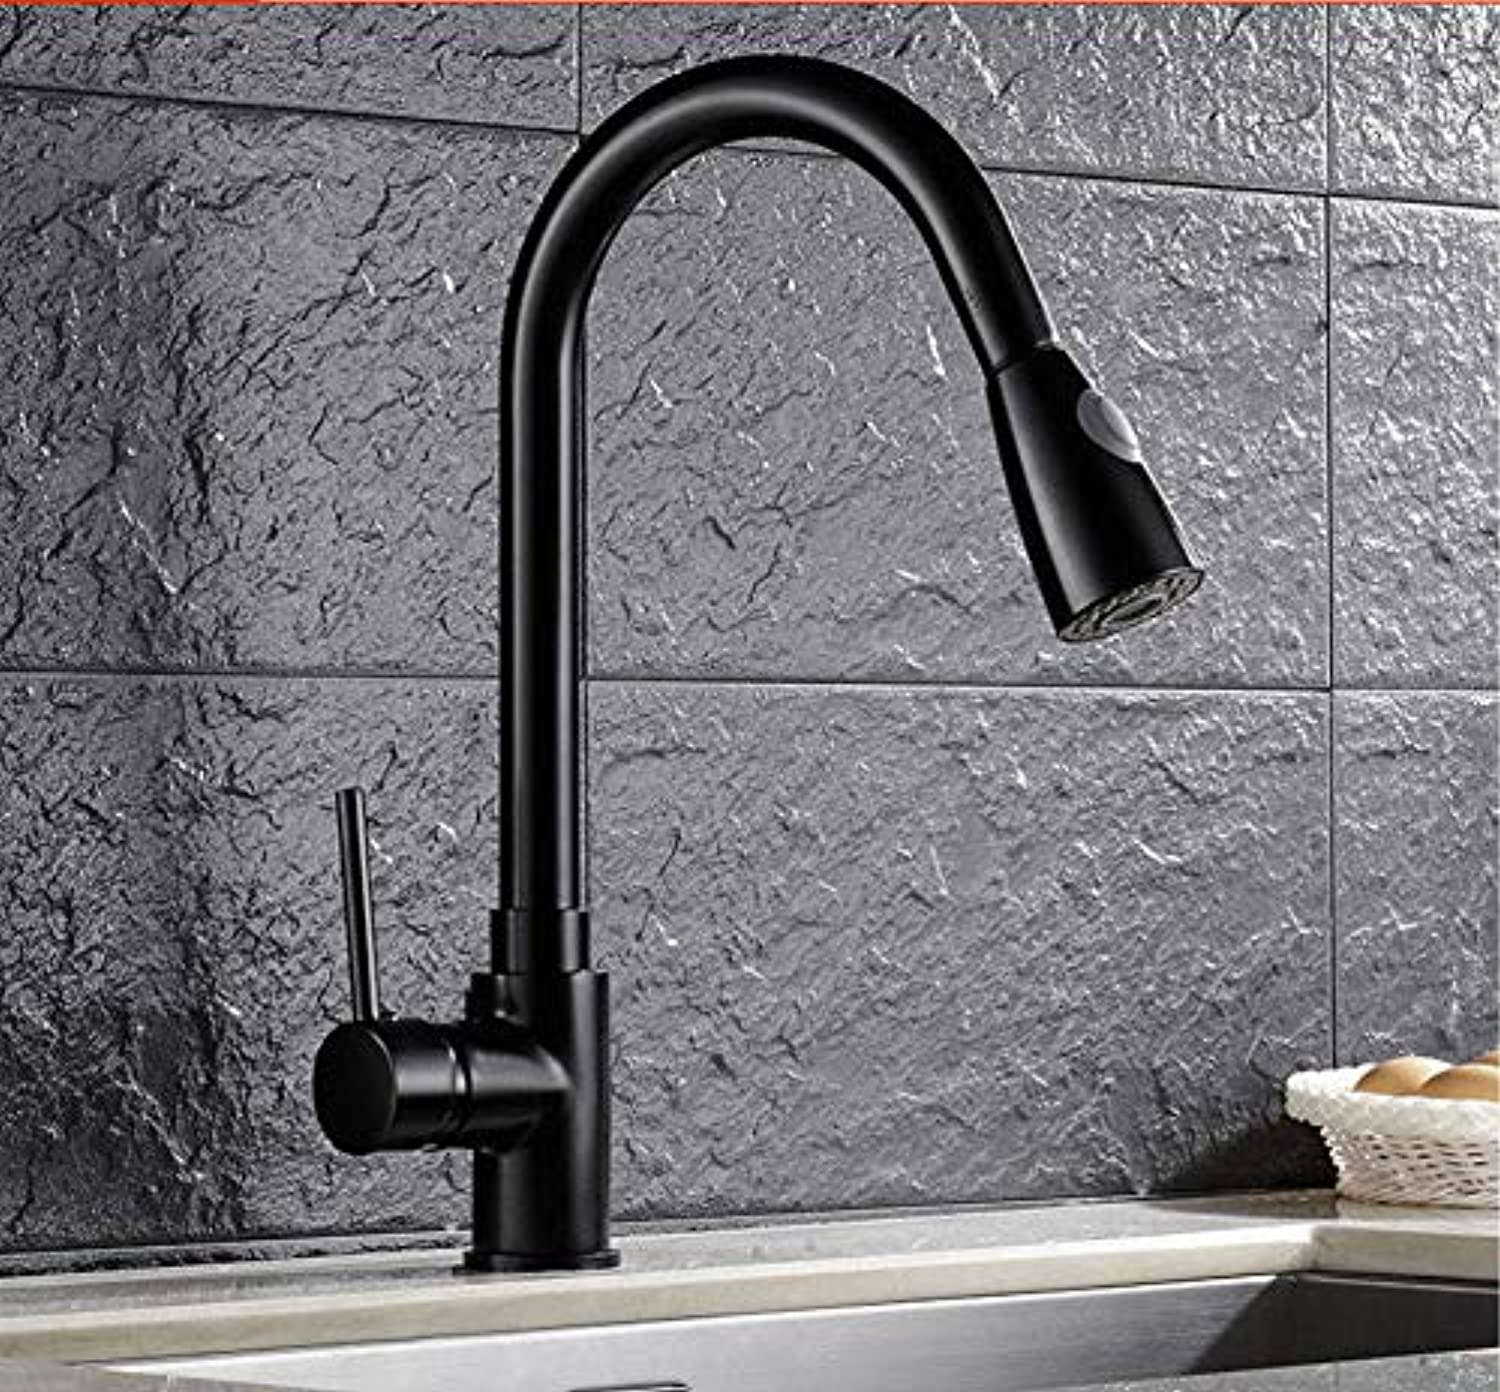 Xiehao Kitchen Pull Out Cool Black Painted Finish Flexible Hot and Cold Mixer Taps Deck Mount Swivel Faucet Ceramic Disc Basin Faucets